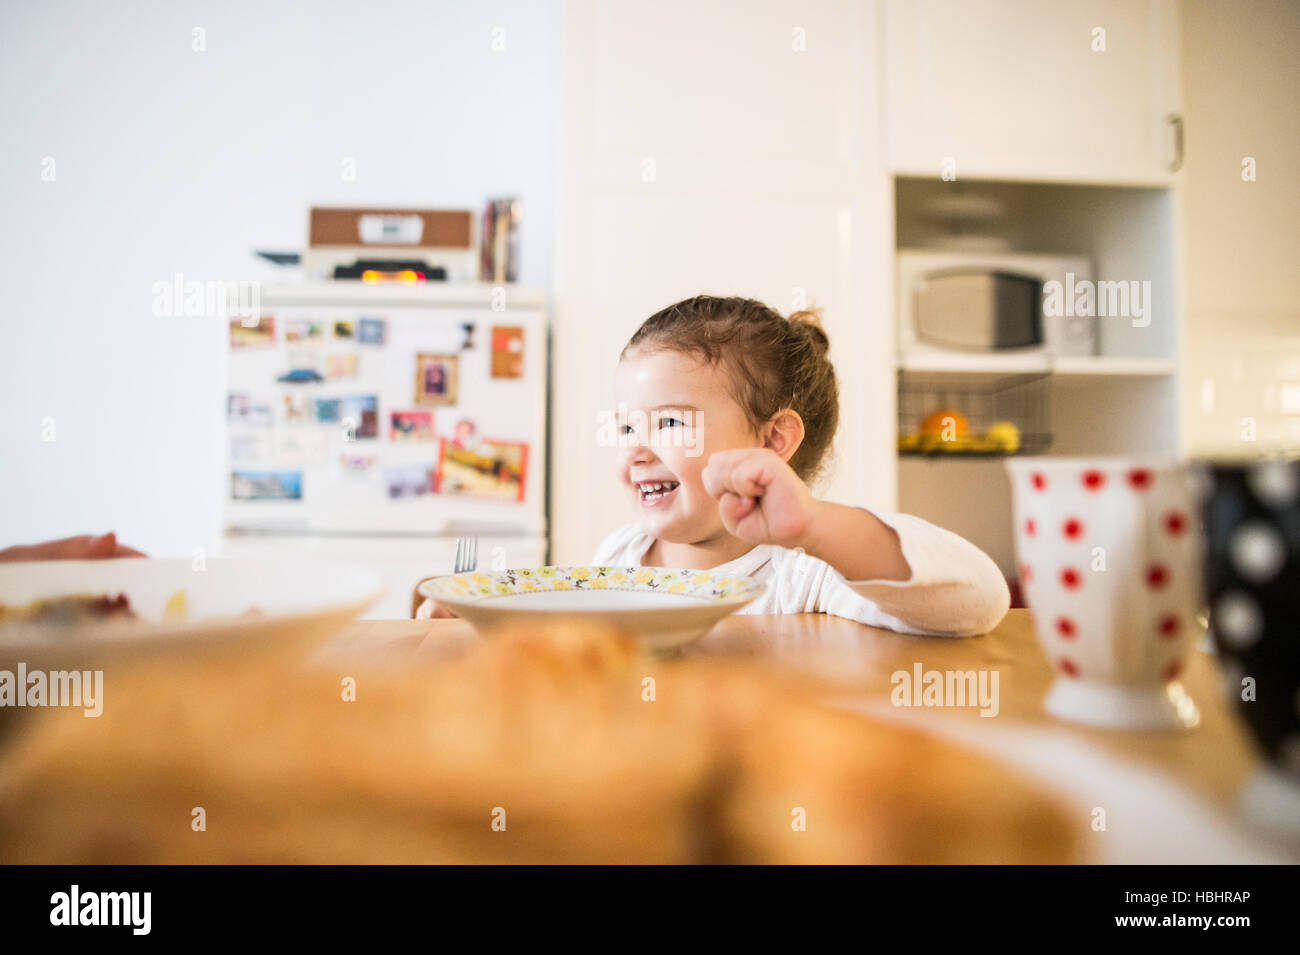 Little girl sitting at the table, eating breakfast - Stock Image